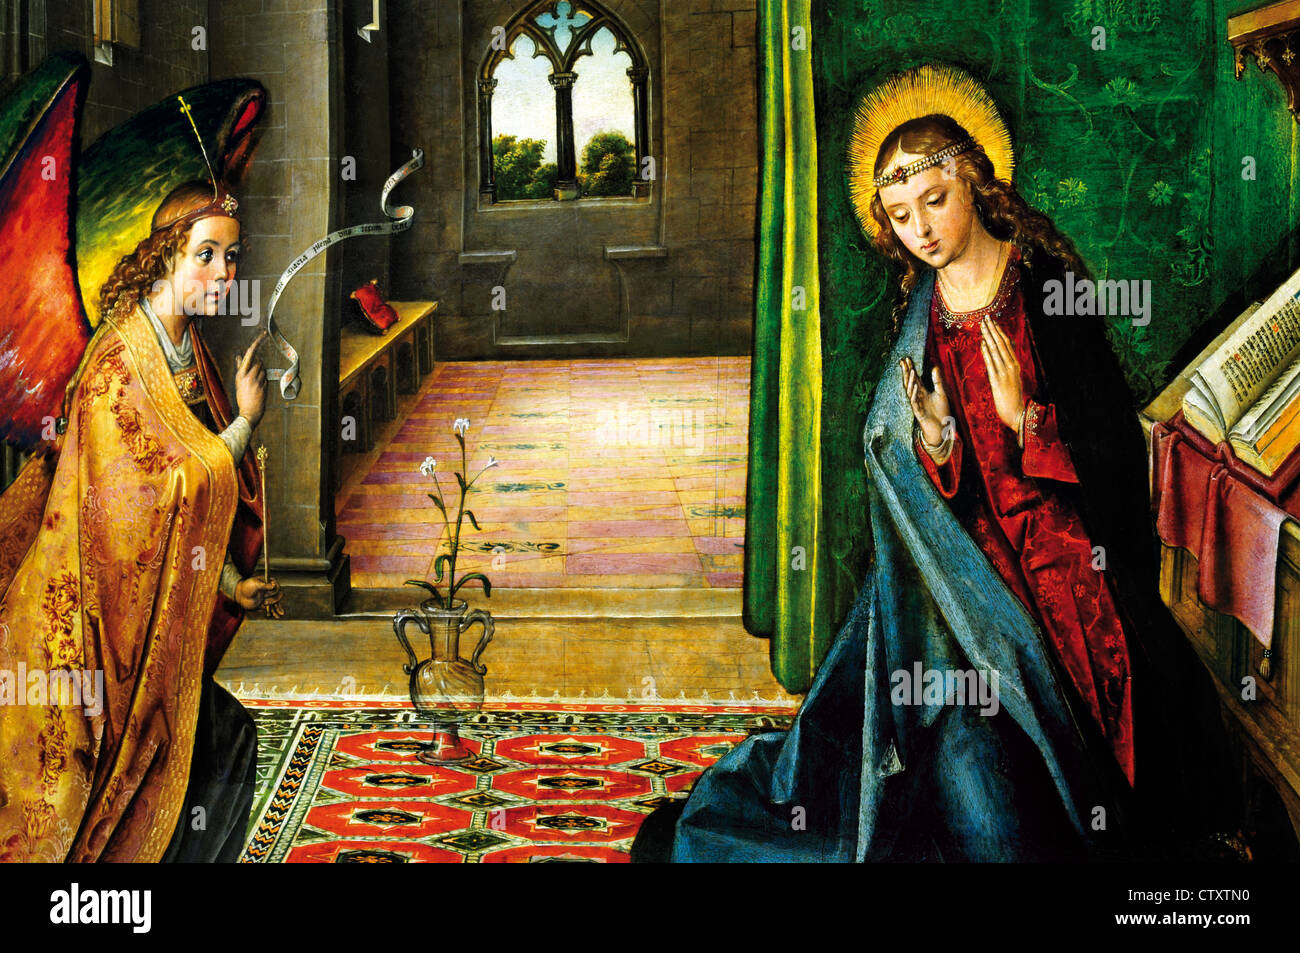 Spain, Burgos: Oil drawing of the 'Annunciation of Virgin Mary' in the museum of Monastery Cartuja de Miraflores - Stock Image